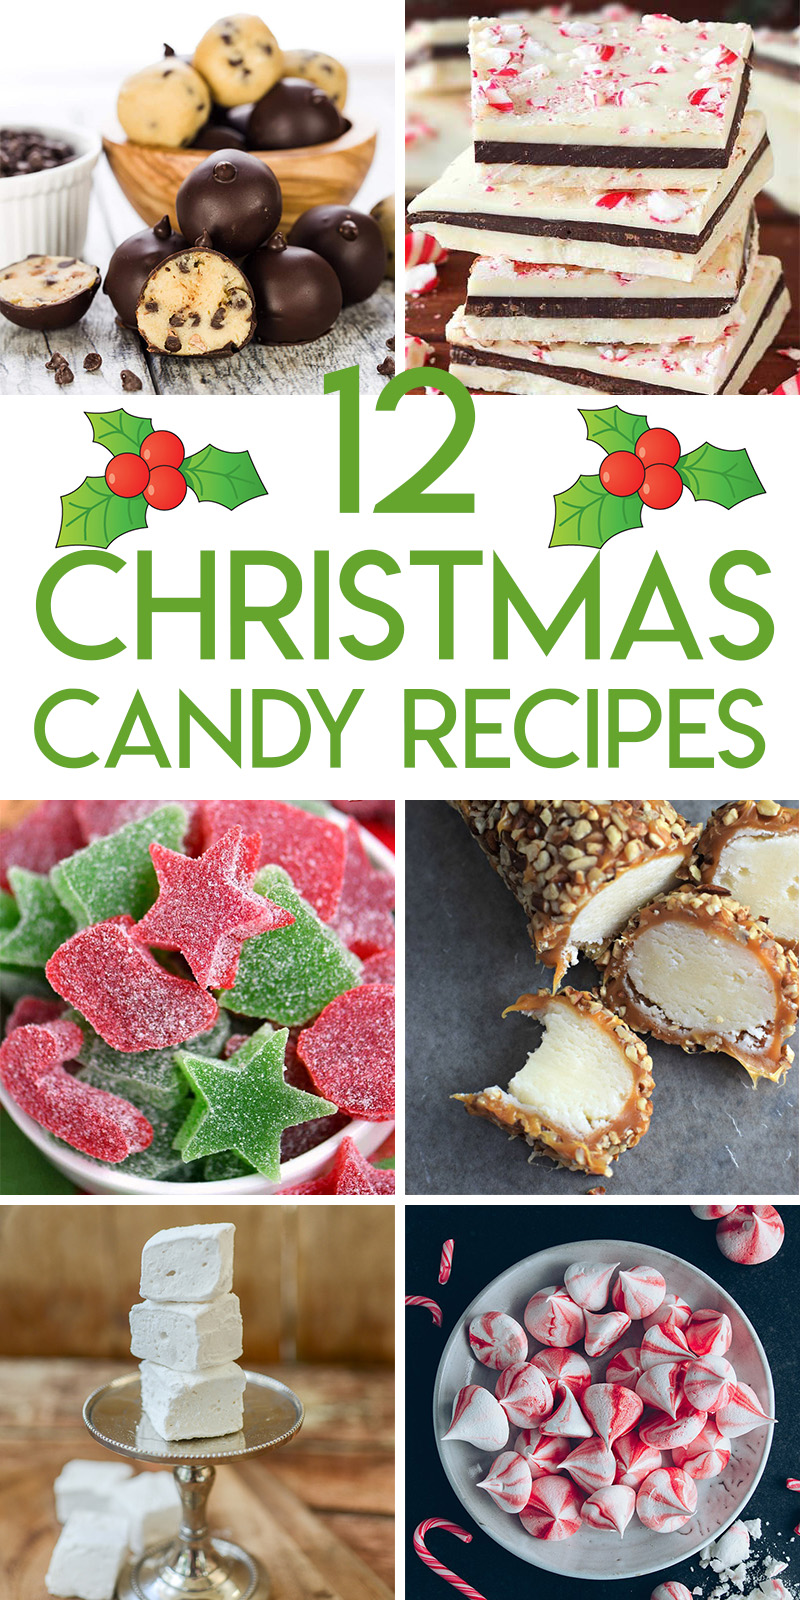 12 amazing Christmas candy recipes